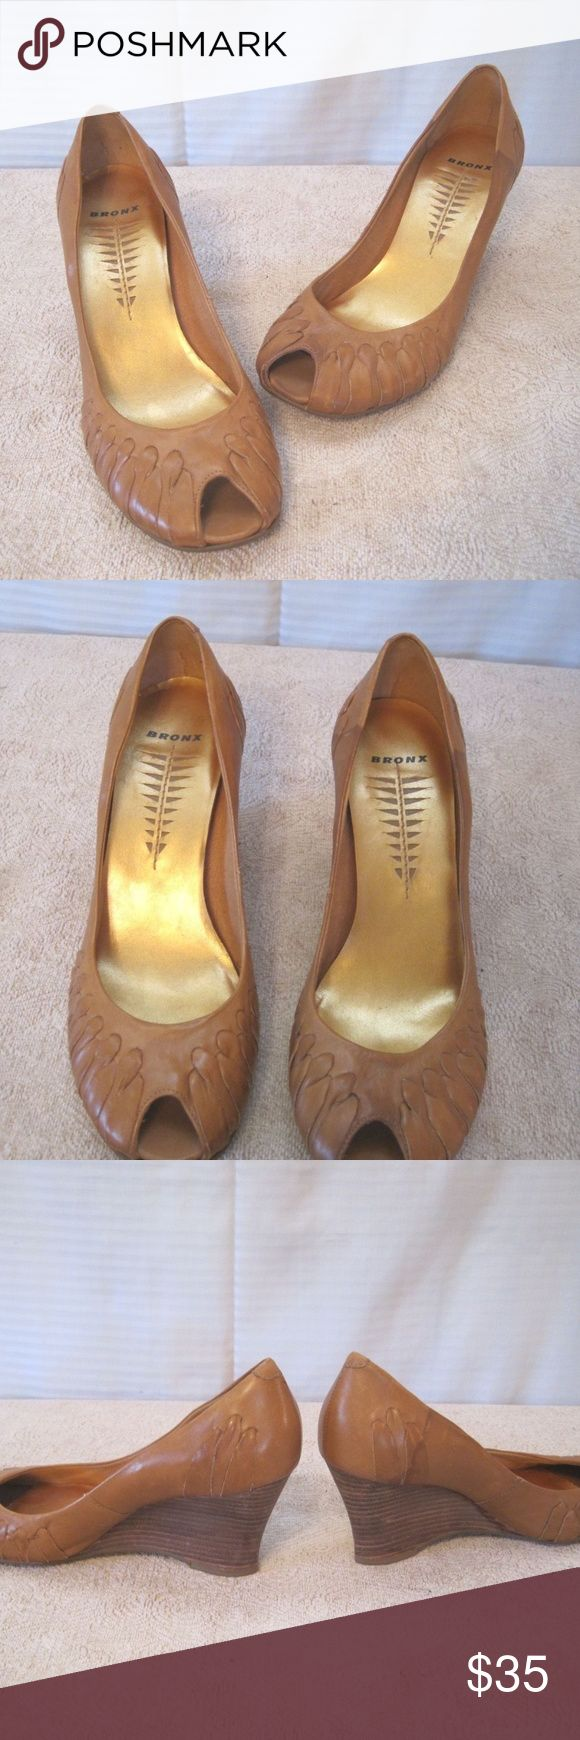 "Camel Brown Leather Wedge Heel Shoes- Women's Bronx Camel Brown Leather Wedge Heel Shoes- Size 8M- Made in Brazil  Good overall condition. Minor wear present on soles.  Measures approximately:   3"" tall heel. Bronx Shoes Platforms"